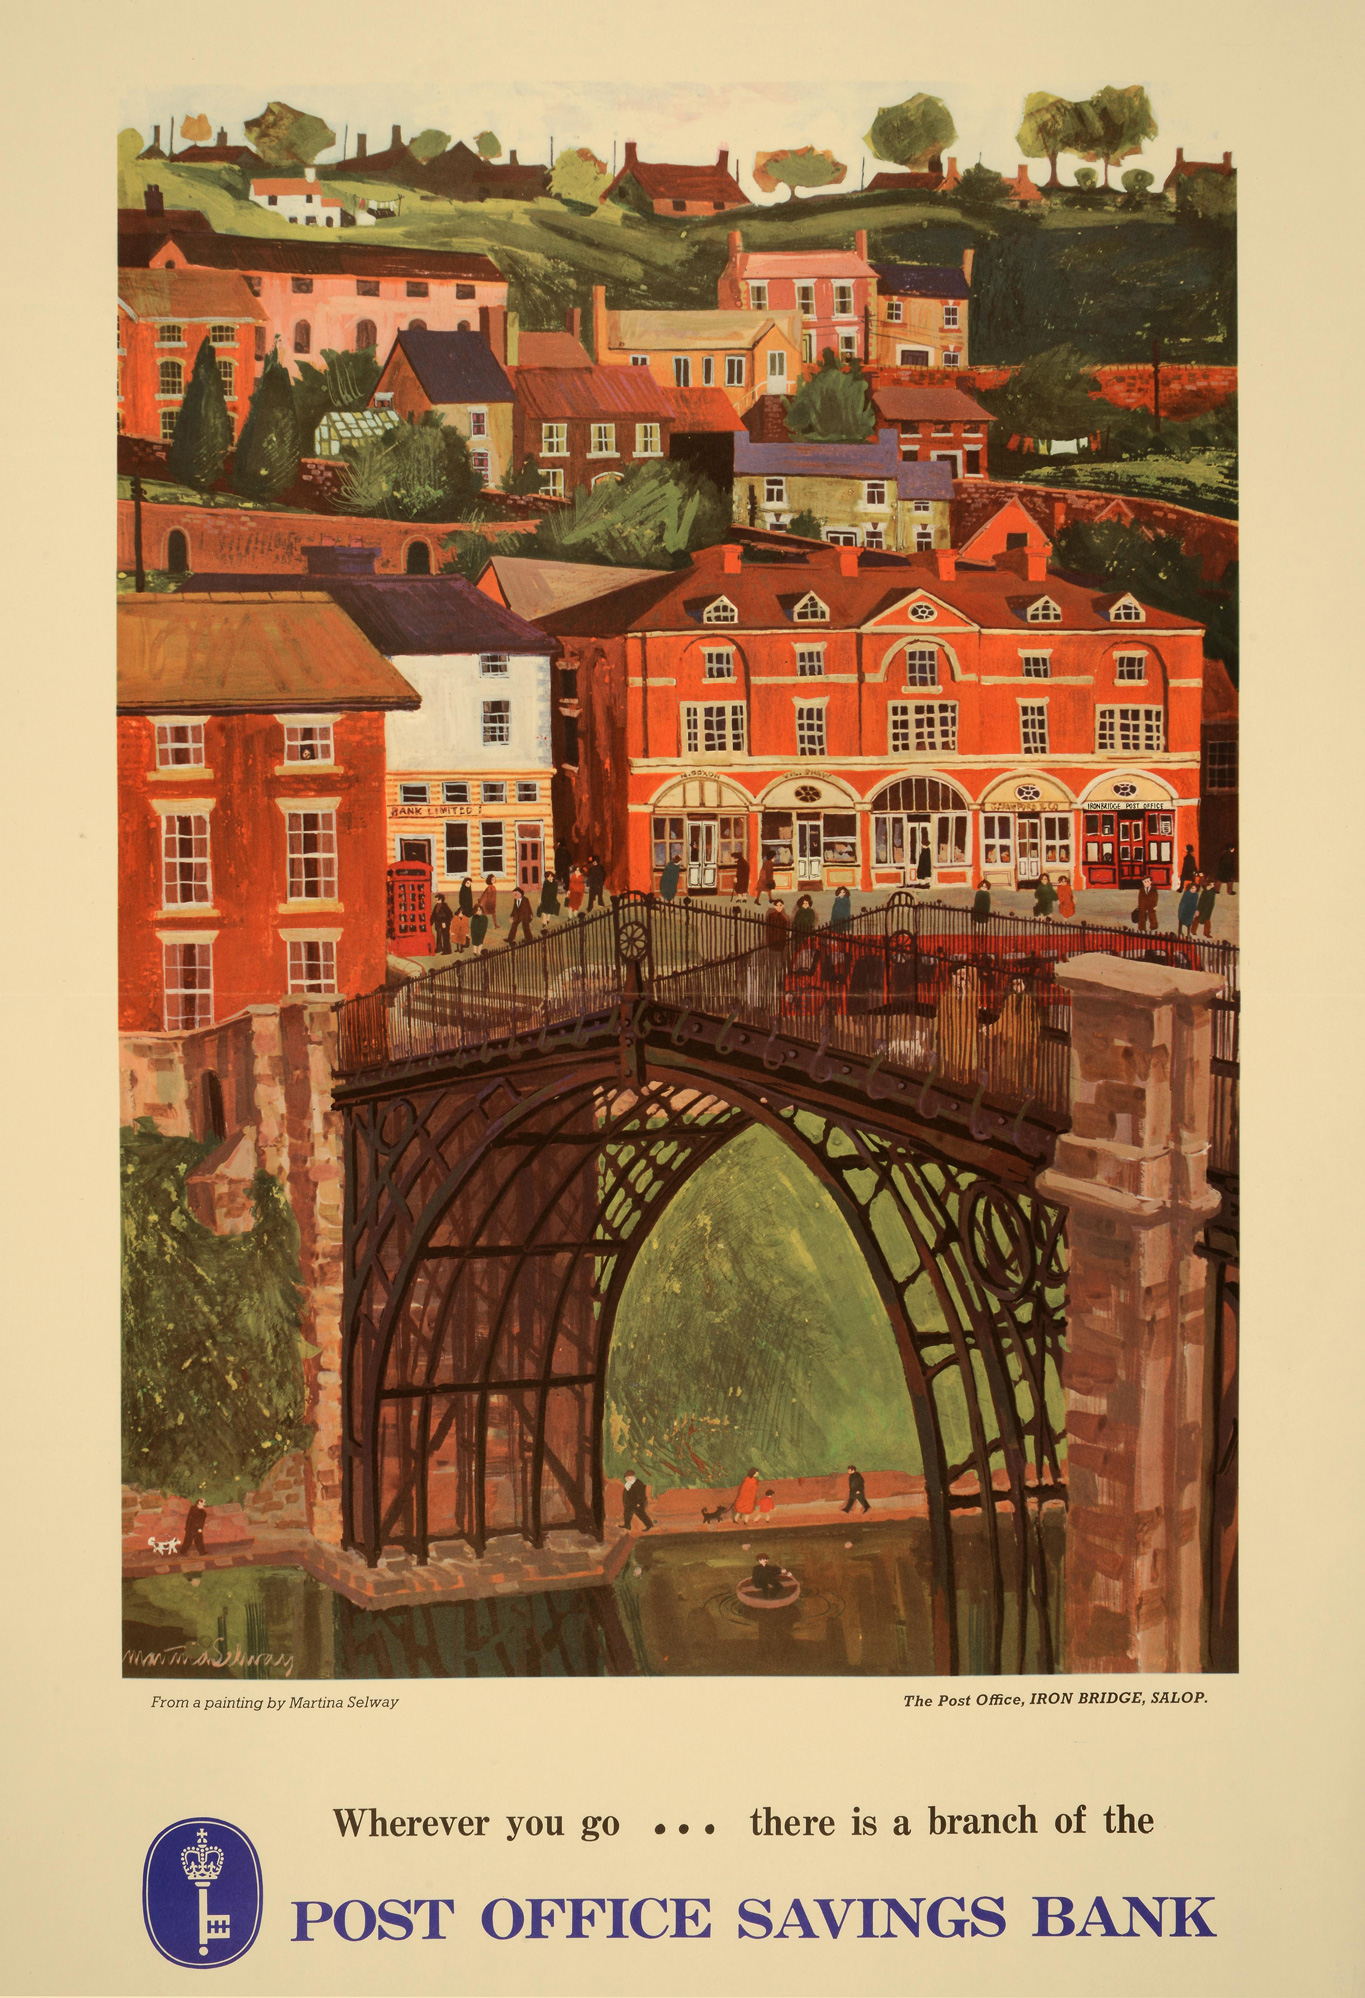 NSC25/505 1966 Iron Bridge